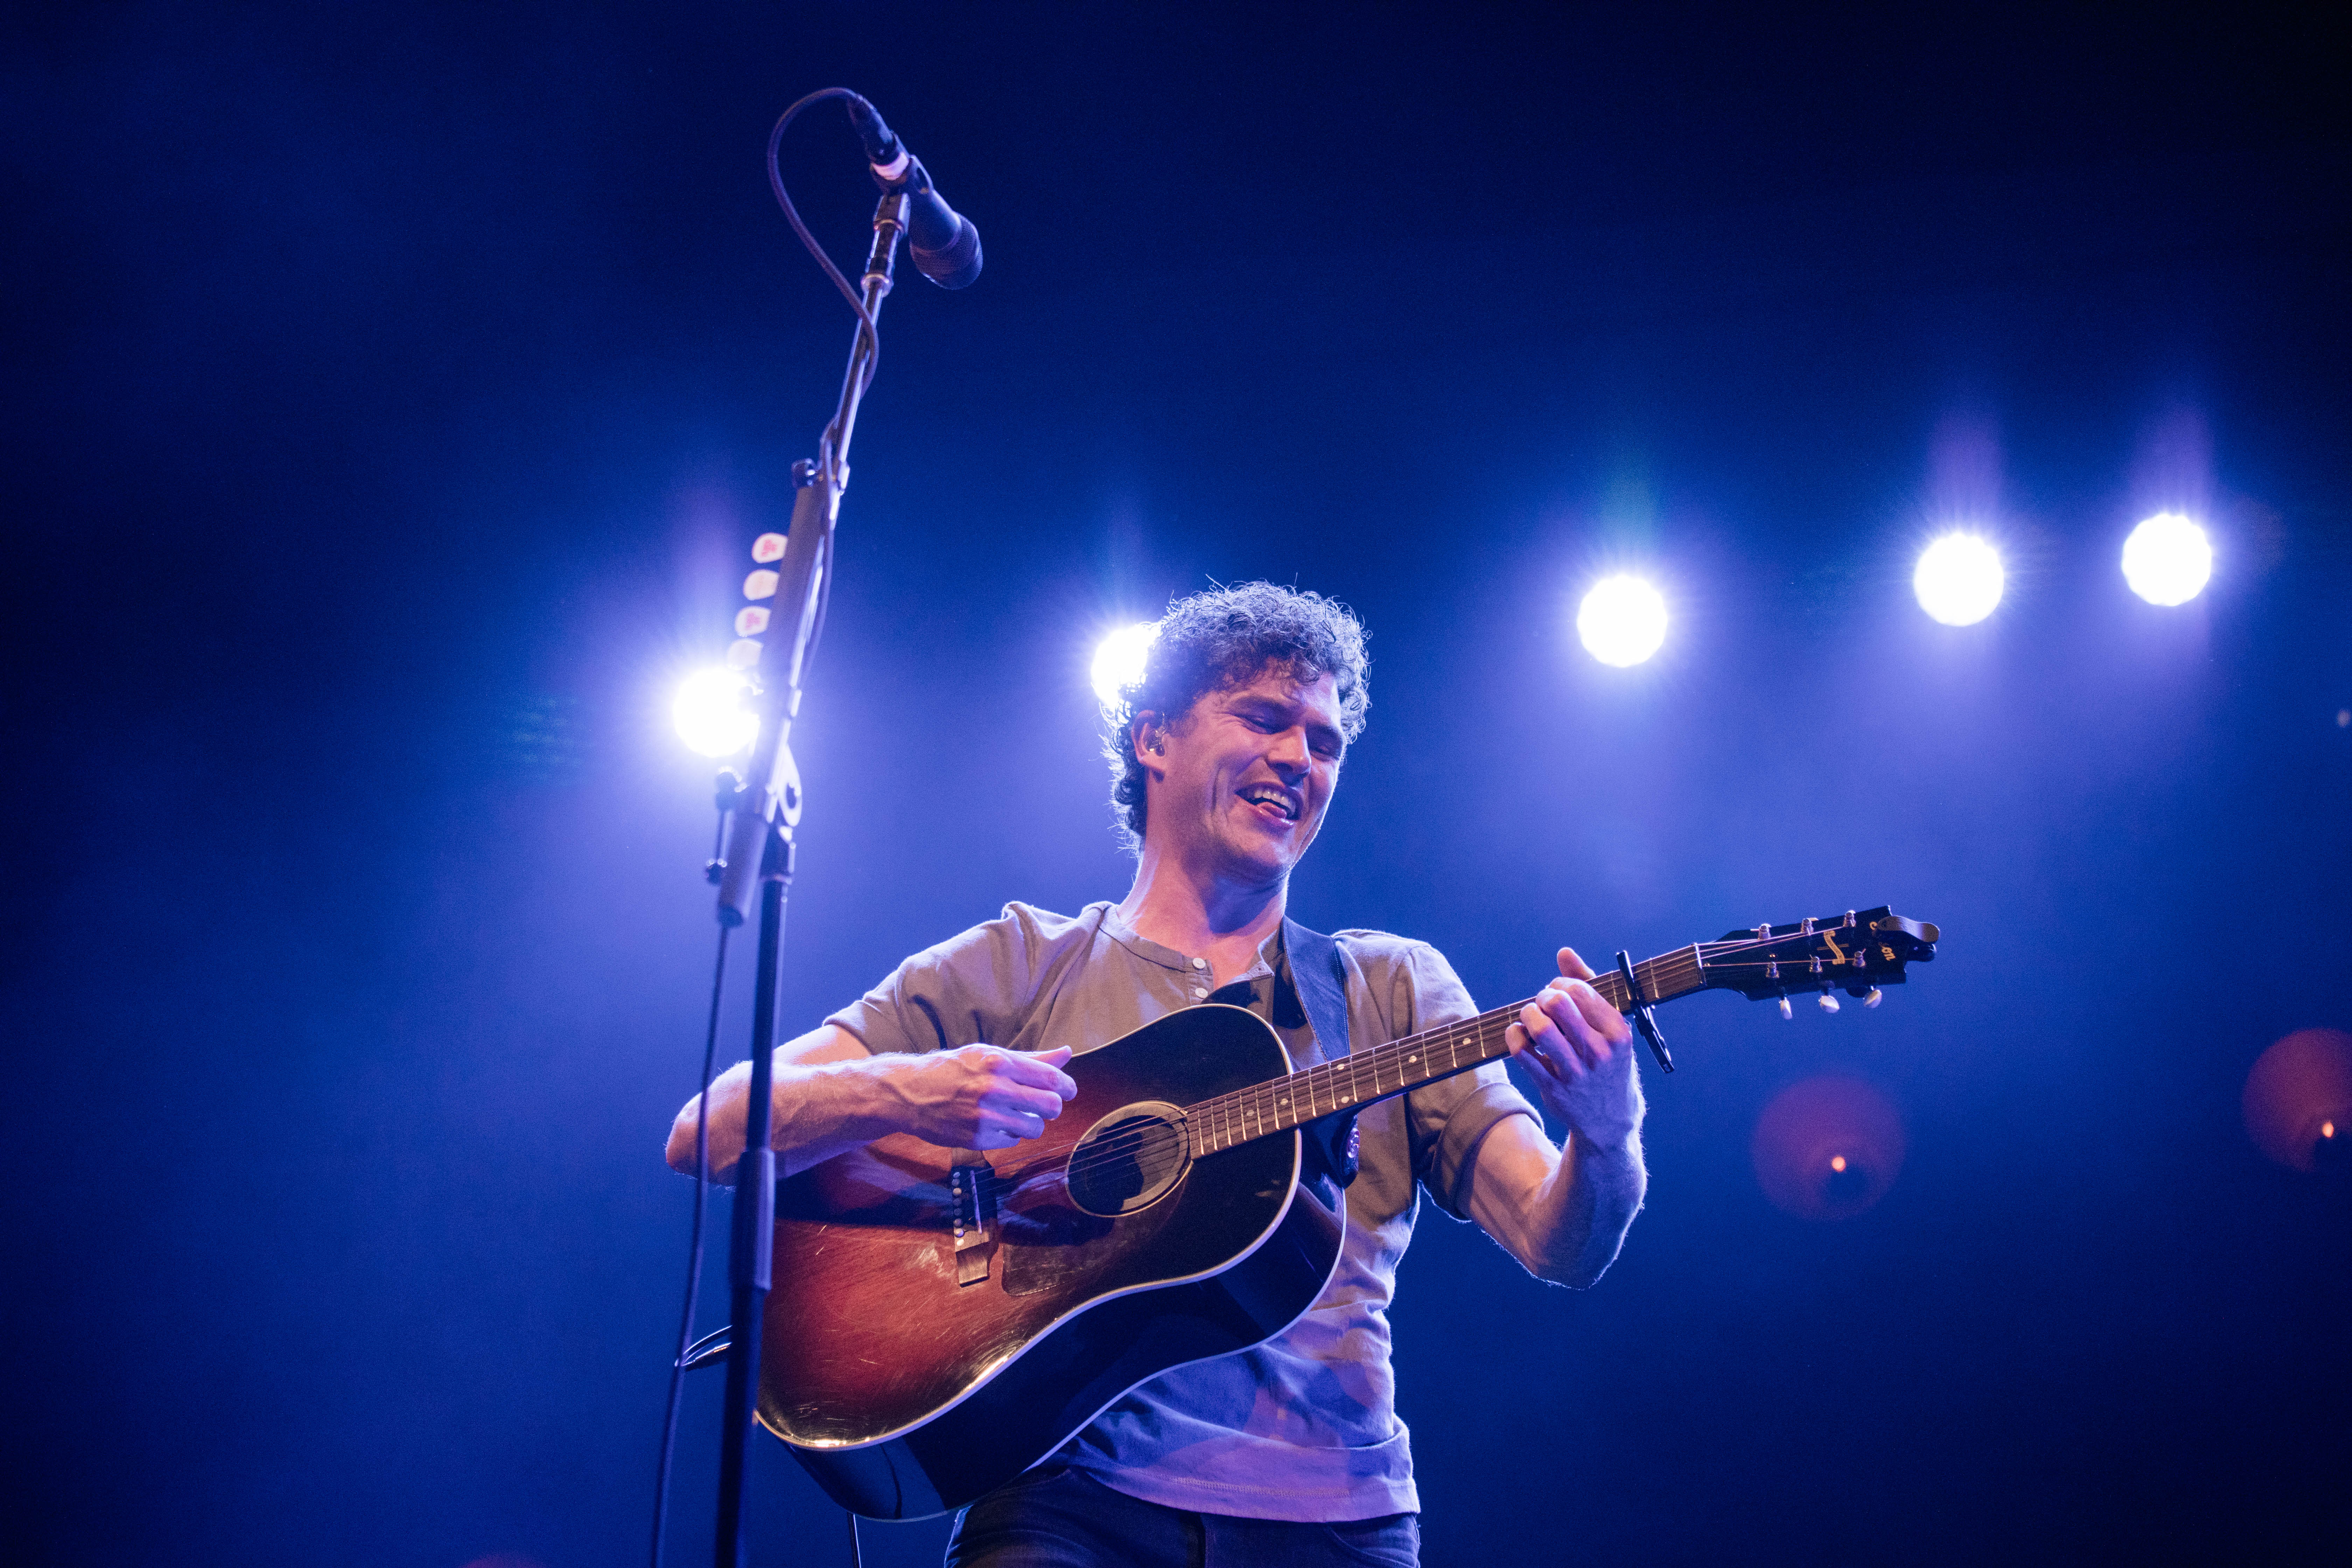 vance joy live review sydney photo credit statler willand savage thrills savagethrills 6